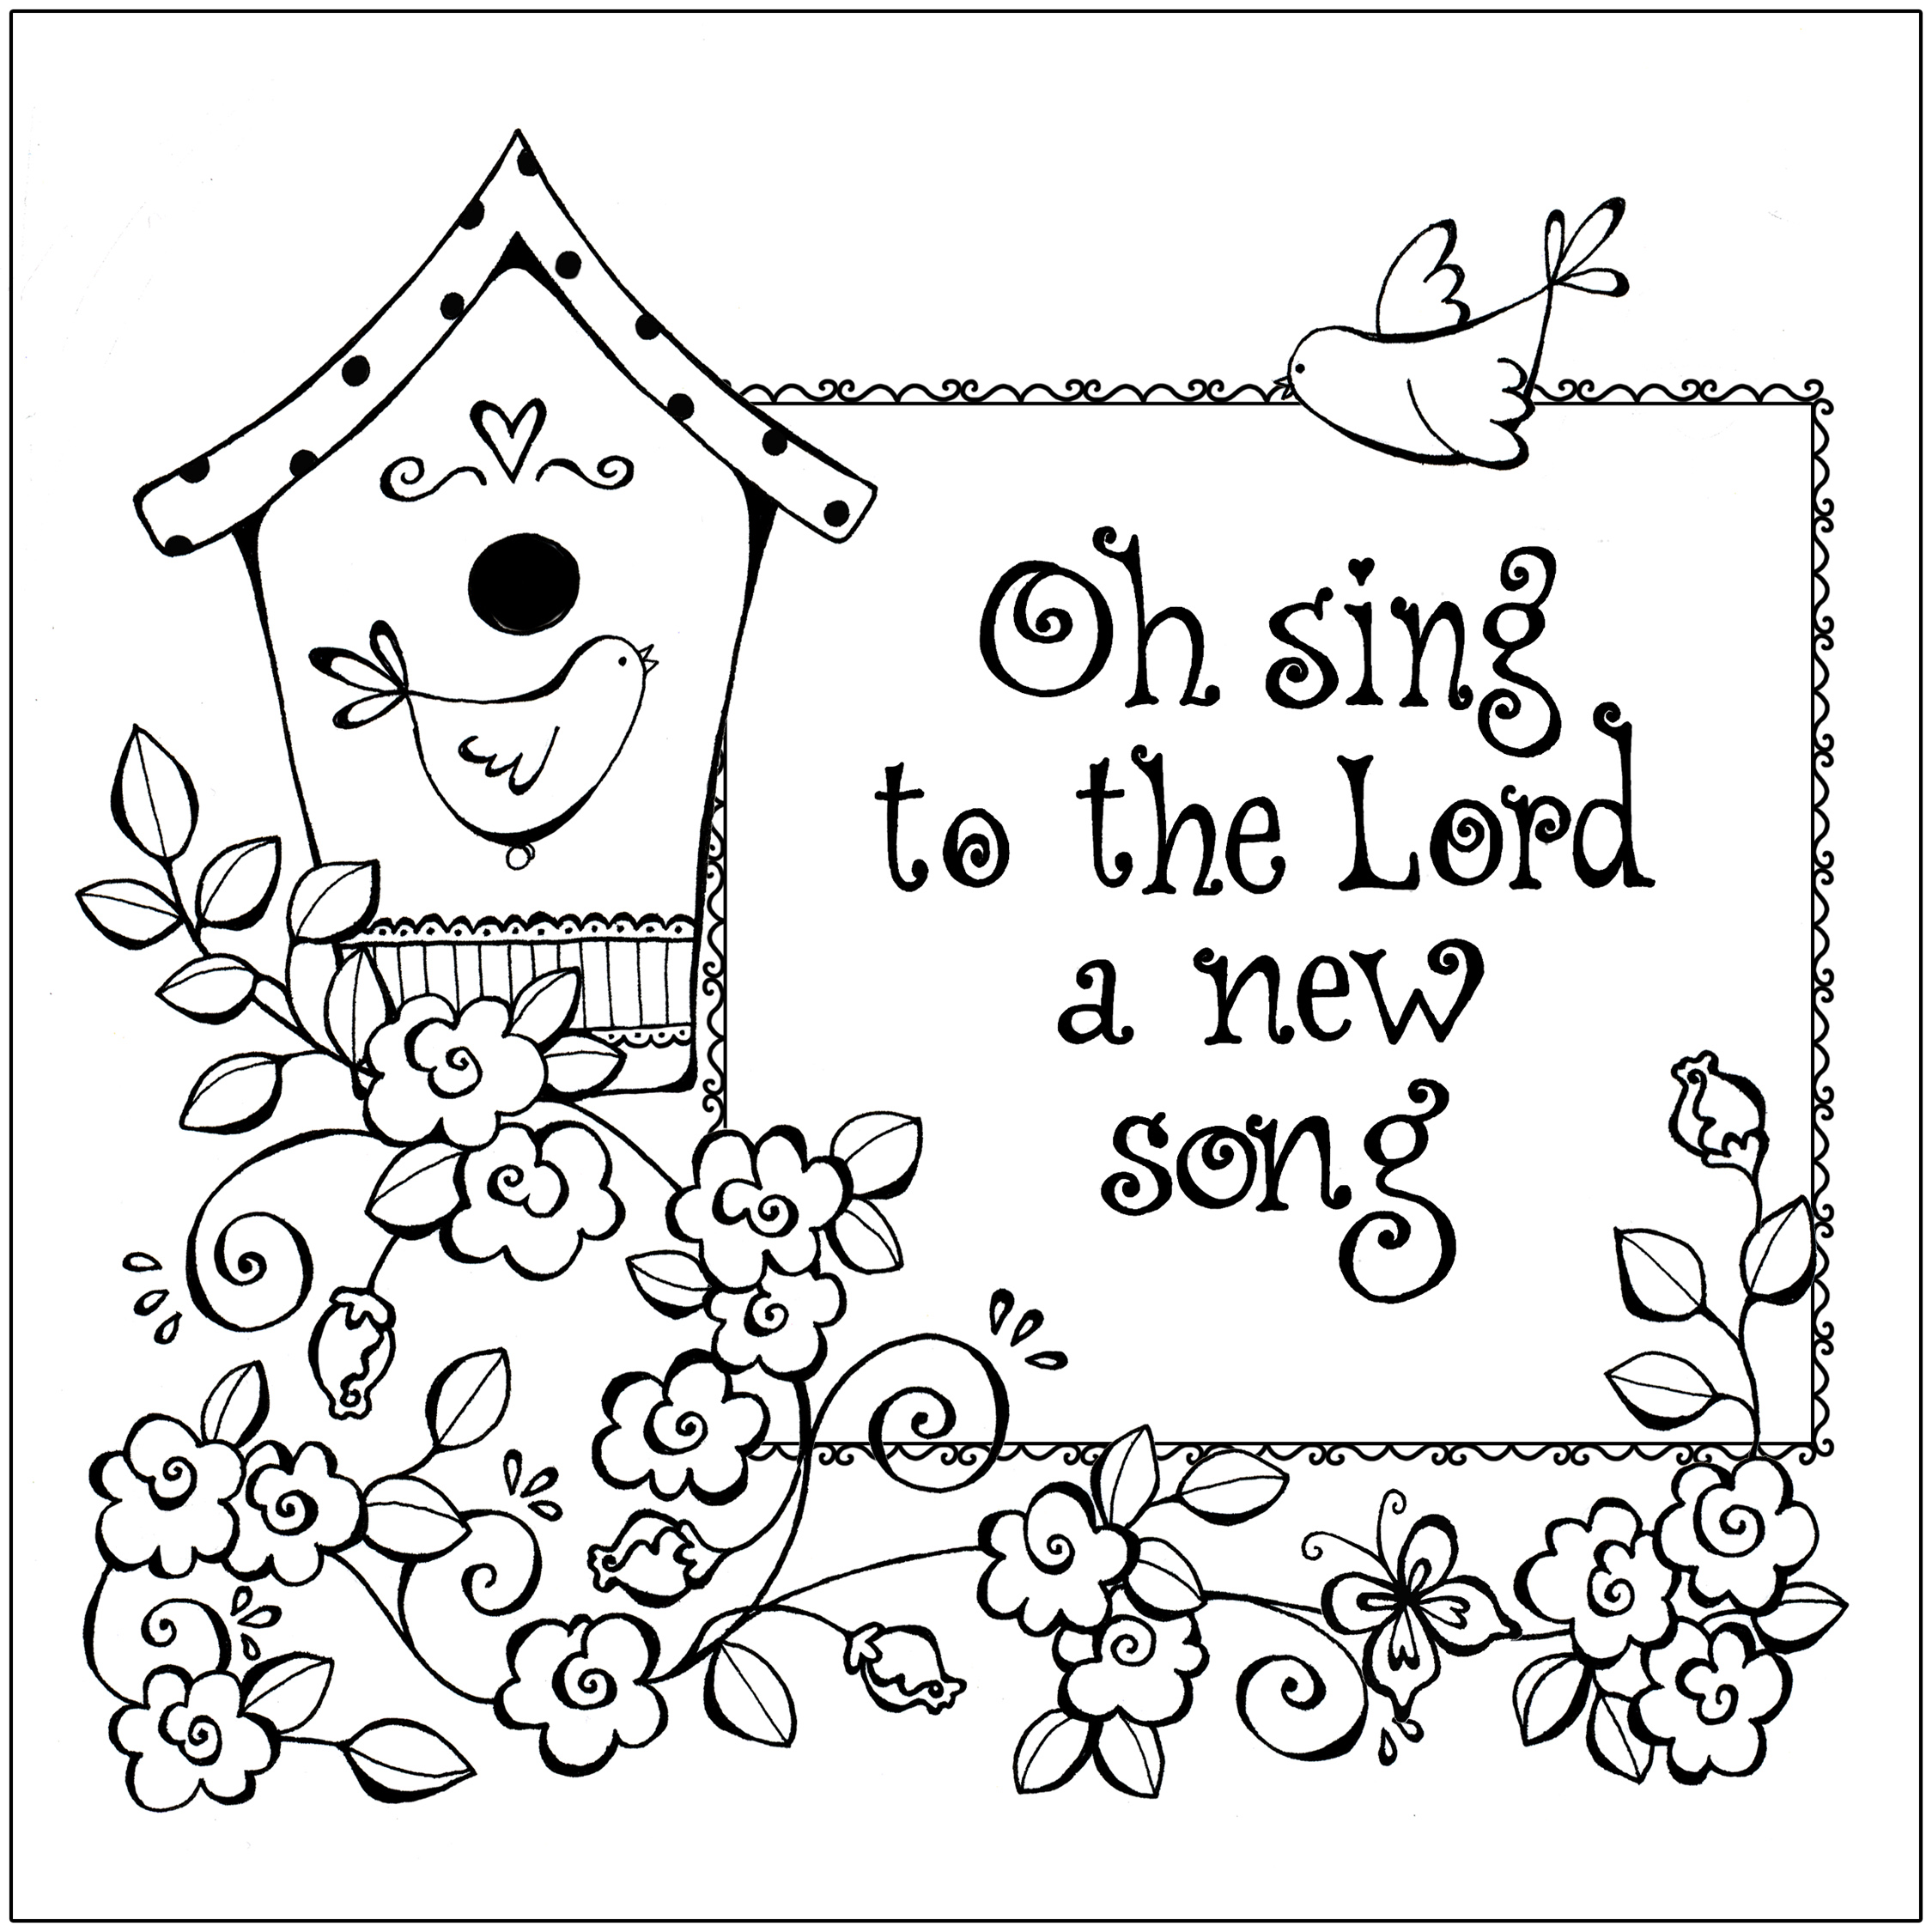 Uncategorized Free Bible Coloring Pages For Kids free printable christian coloring pages for kids best page images